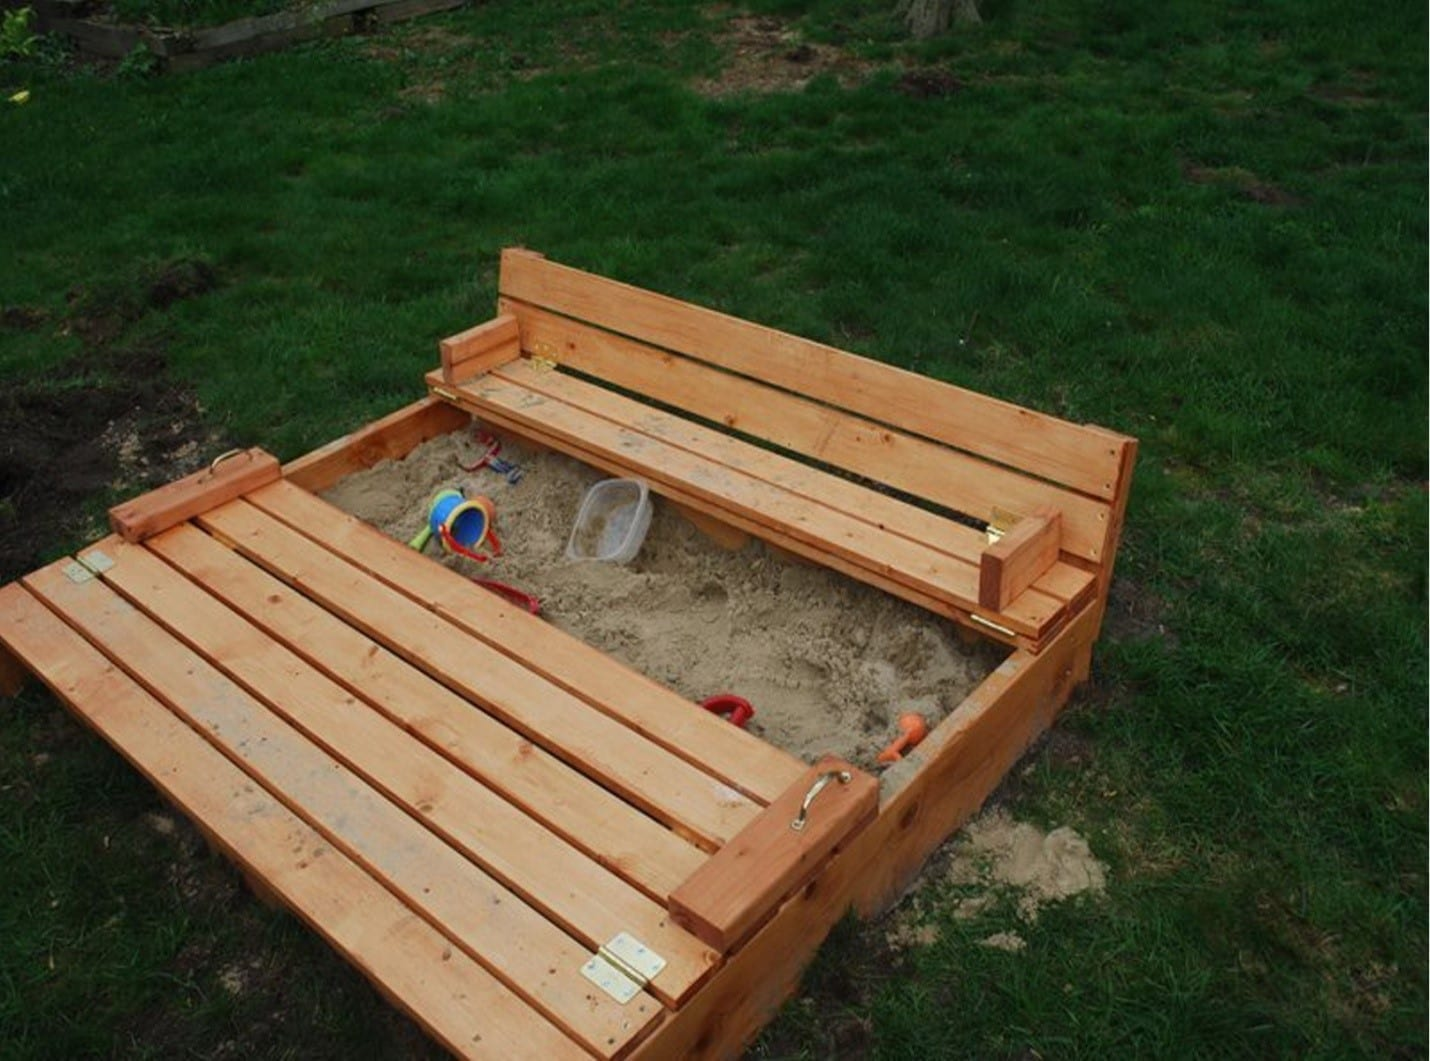 24 Woodworking Project Ideas To Enrich Your Garden – Cut The Wood